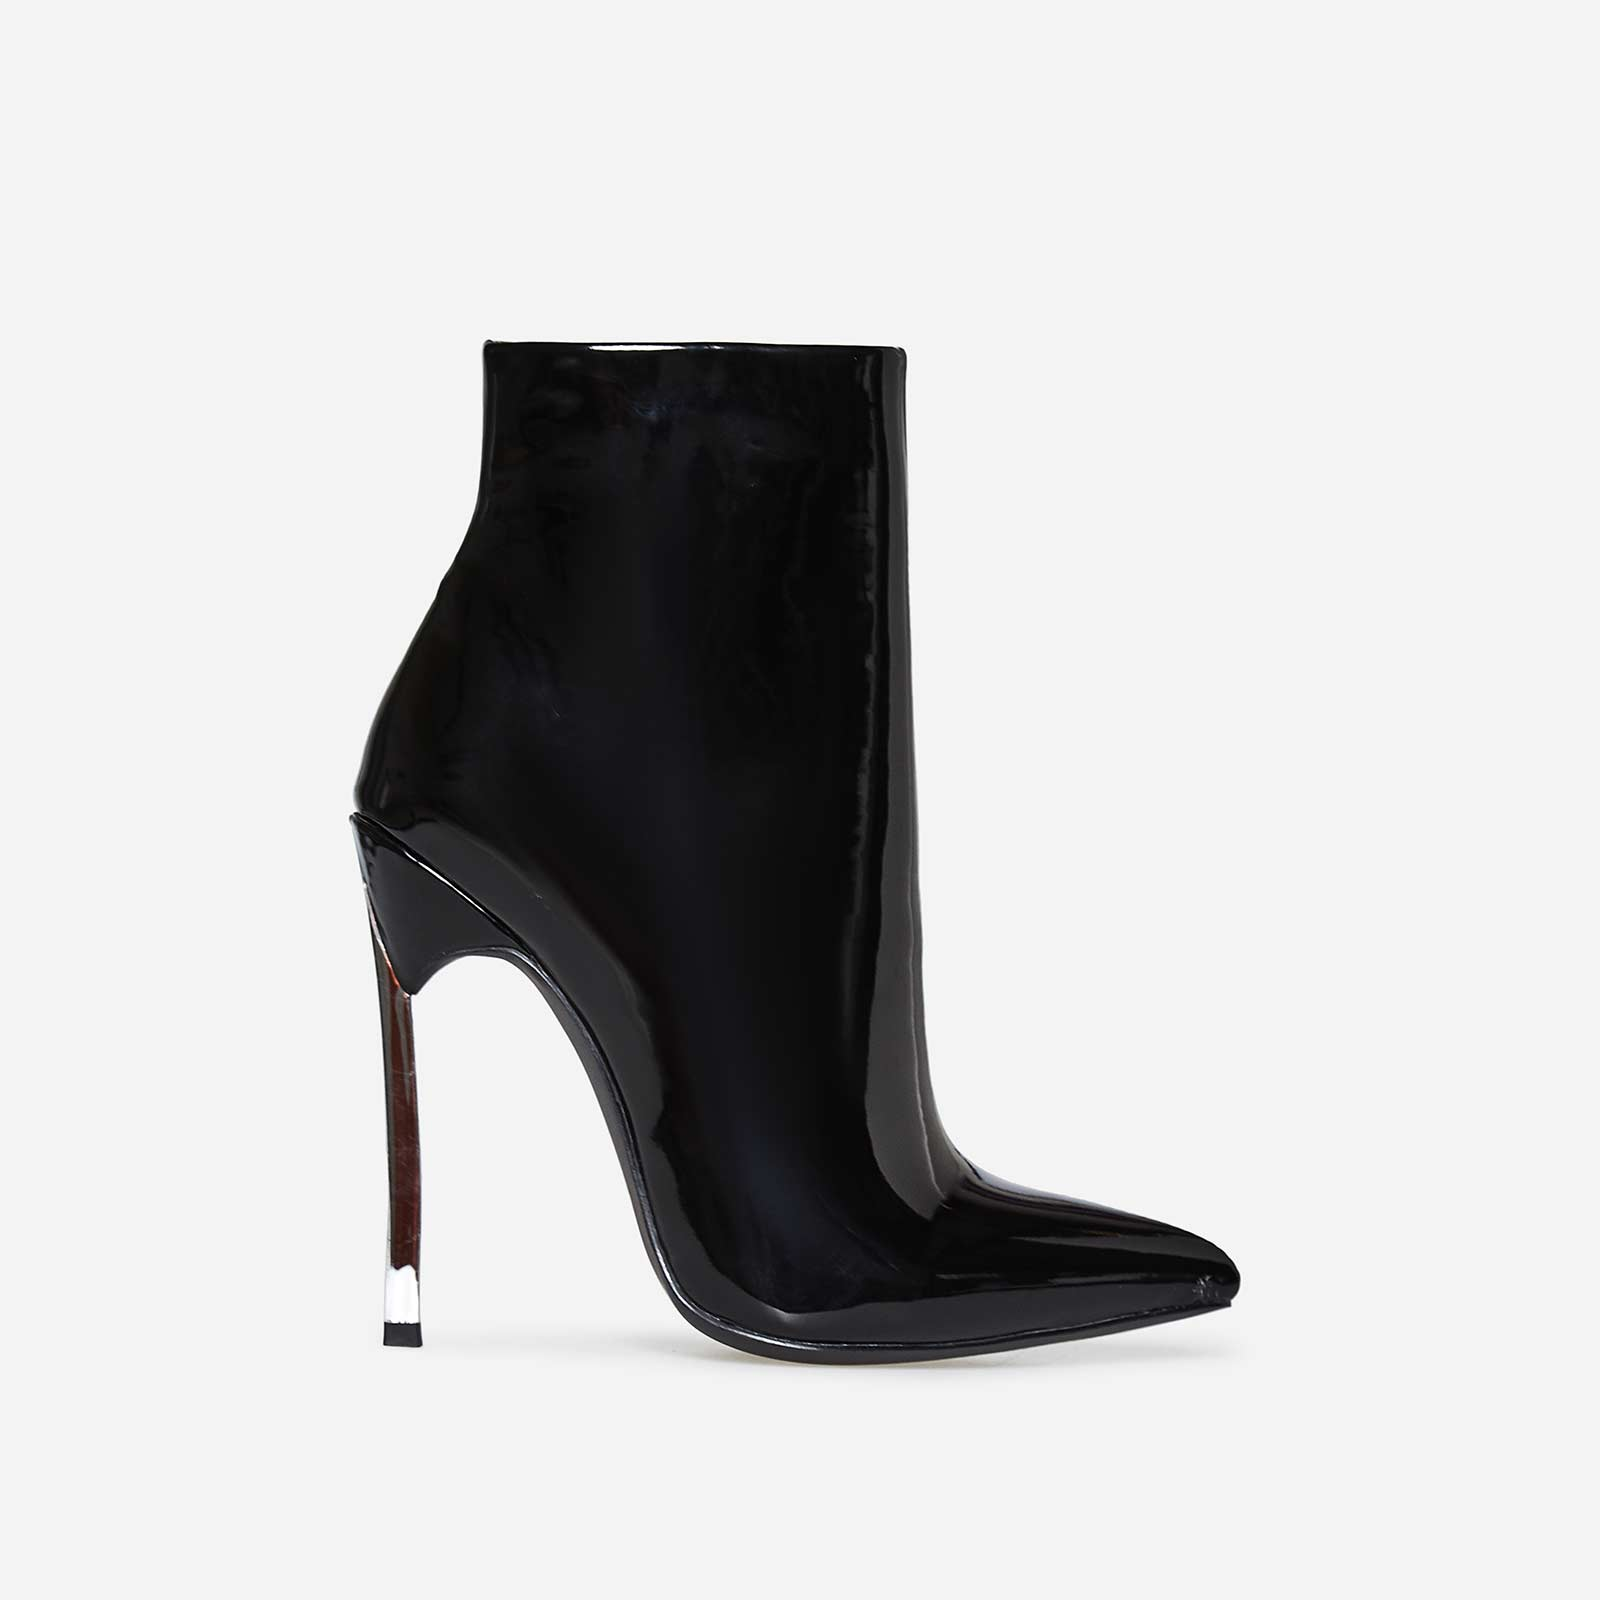 Nina Skinny Heel Pointed Toe Ankle Boot In Black Patent